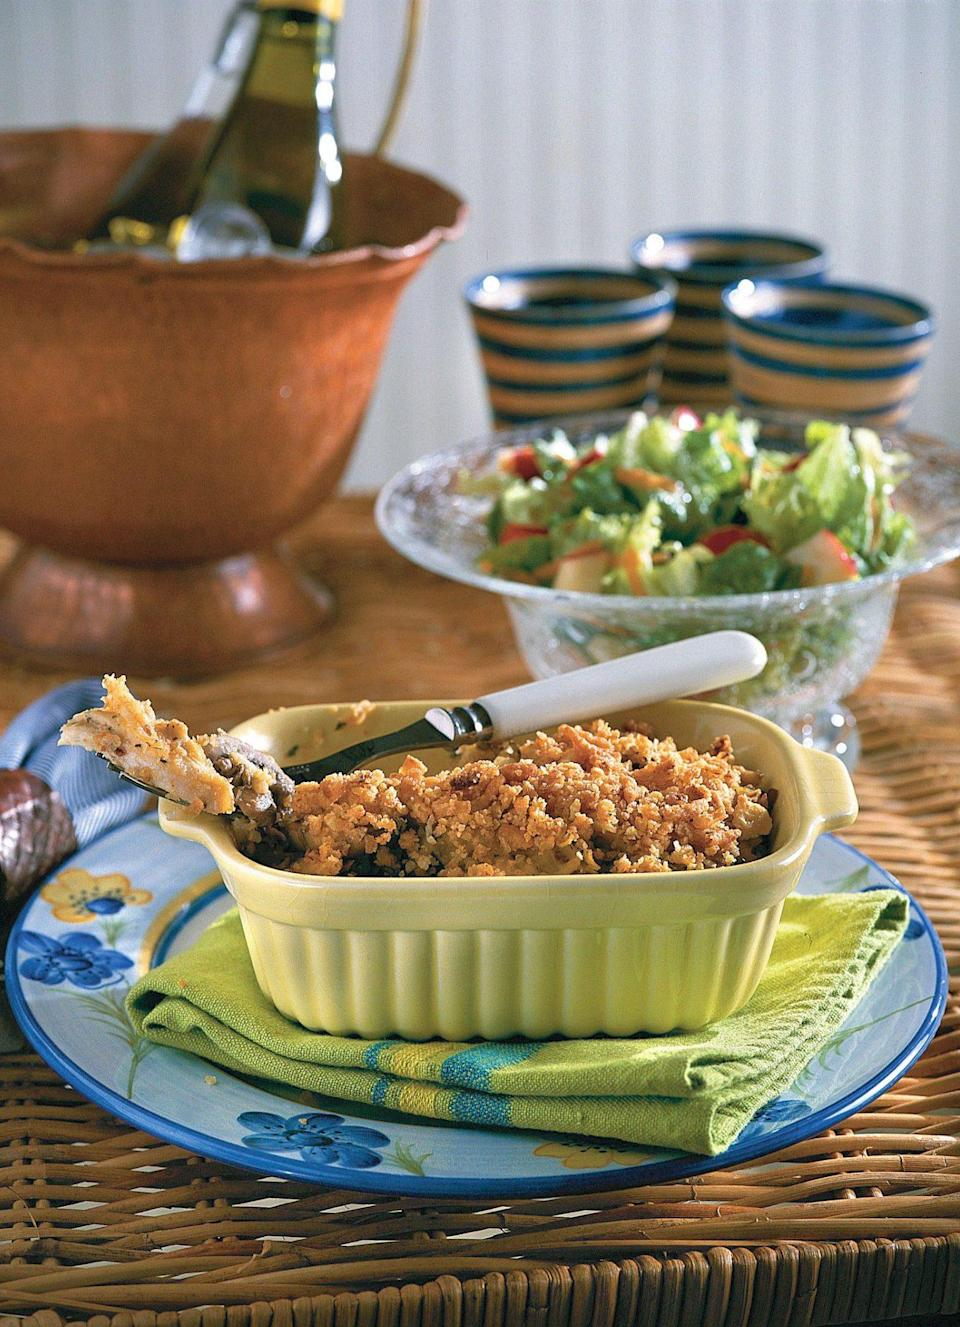 """<p><strong>Recipe: <a href=""""https://www.southernliving.com/syndication/chicken-casserole-diberville"""" rel=""""nofollow noopener"""" target=""""_blank"""" data-ylk=""""slk:Chicken Casserole D'Iberville"""" class=""""link rapid-noclick-resp"""">Chicken Casserole D'Iberville</a></strong></p> <p>You can use rotisserie chicken to shorten the prep time before popping this casserole in the oven. </p>"""